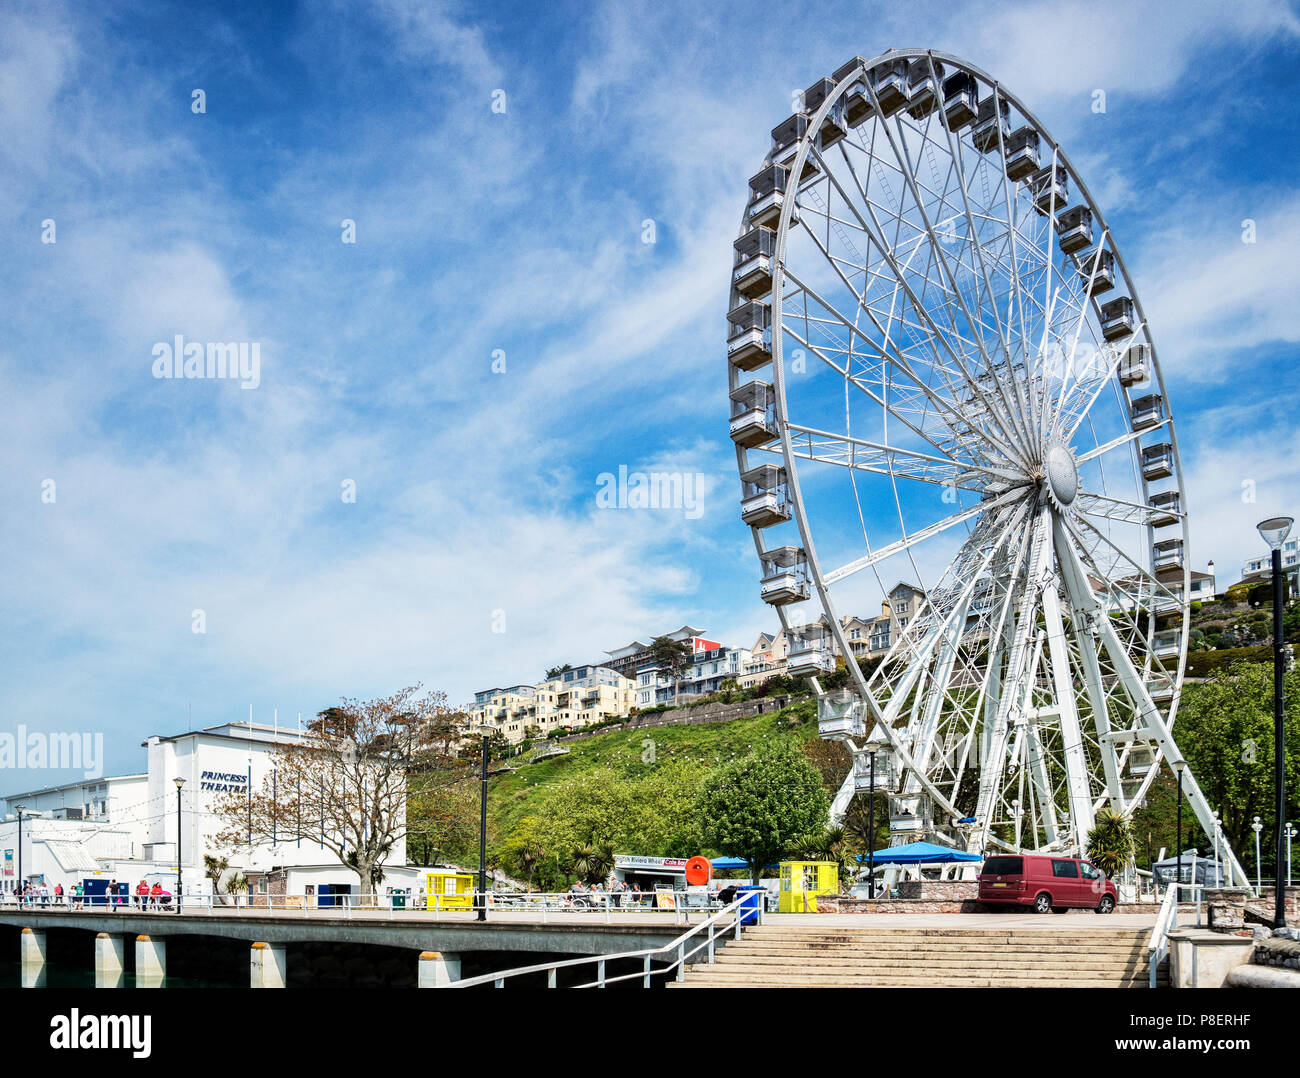 21 May 2018: Torquay, Devon, UK - The English Riviera Wheel and Princess Theatre. - Stock Image